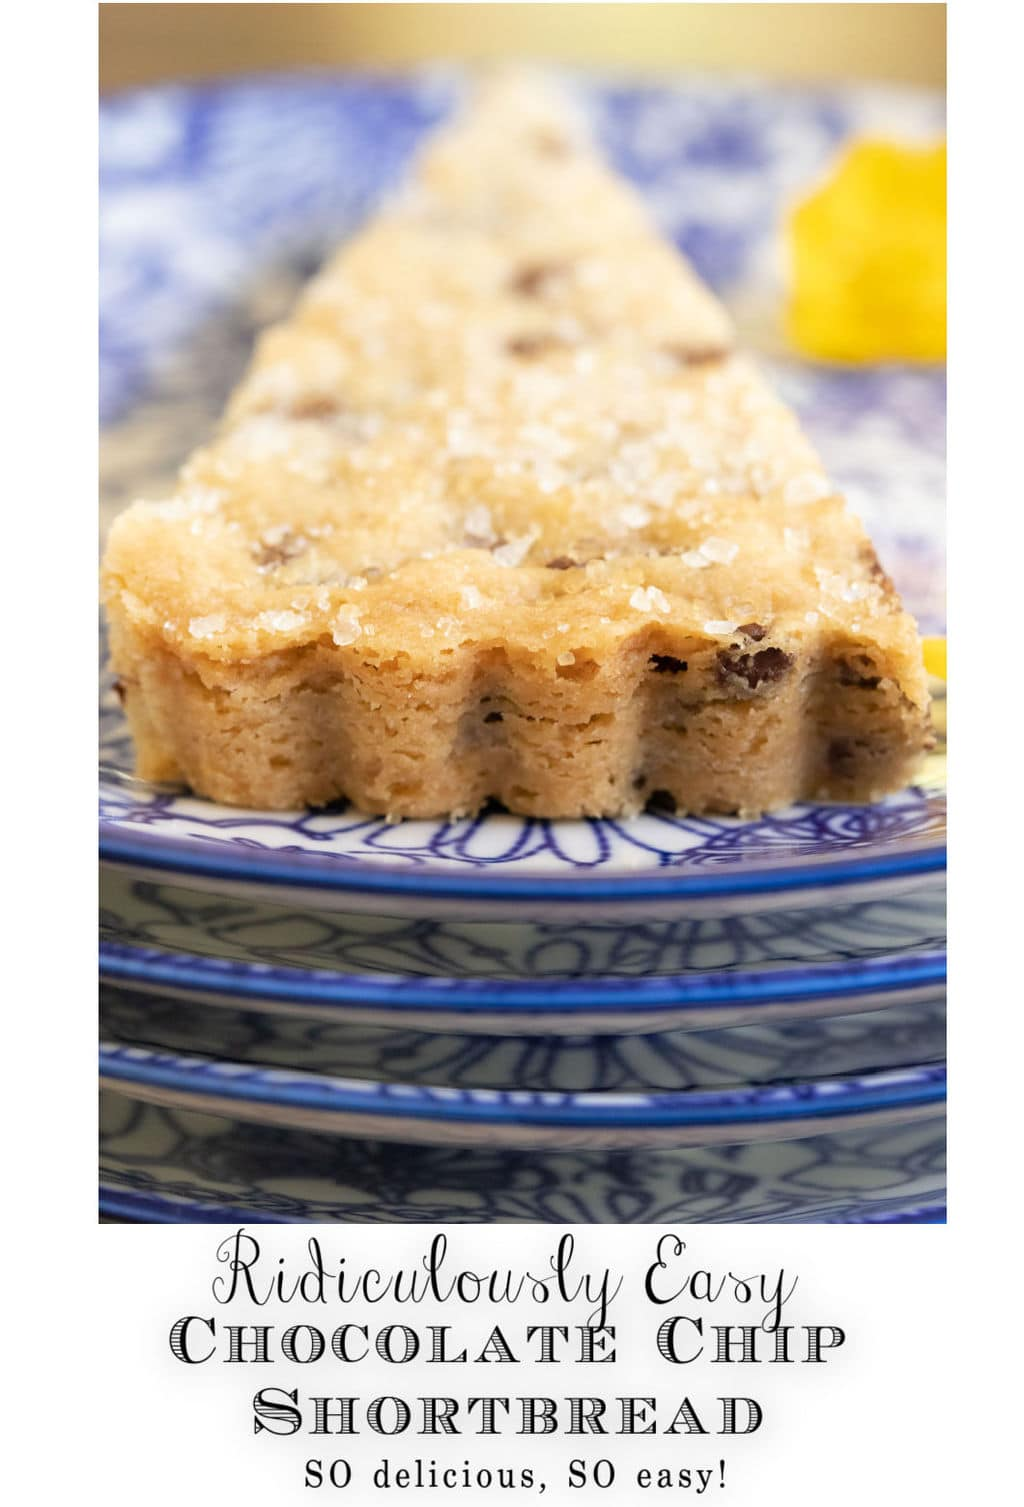 Ridiculously Easy Chocolate Chip Shortbread